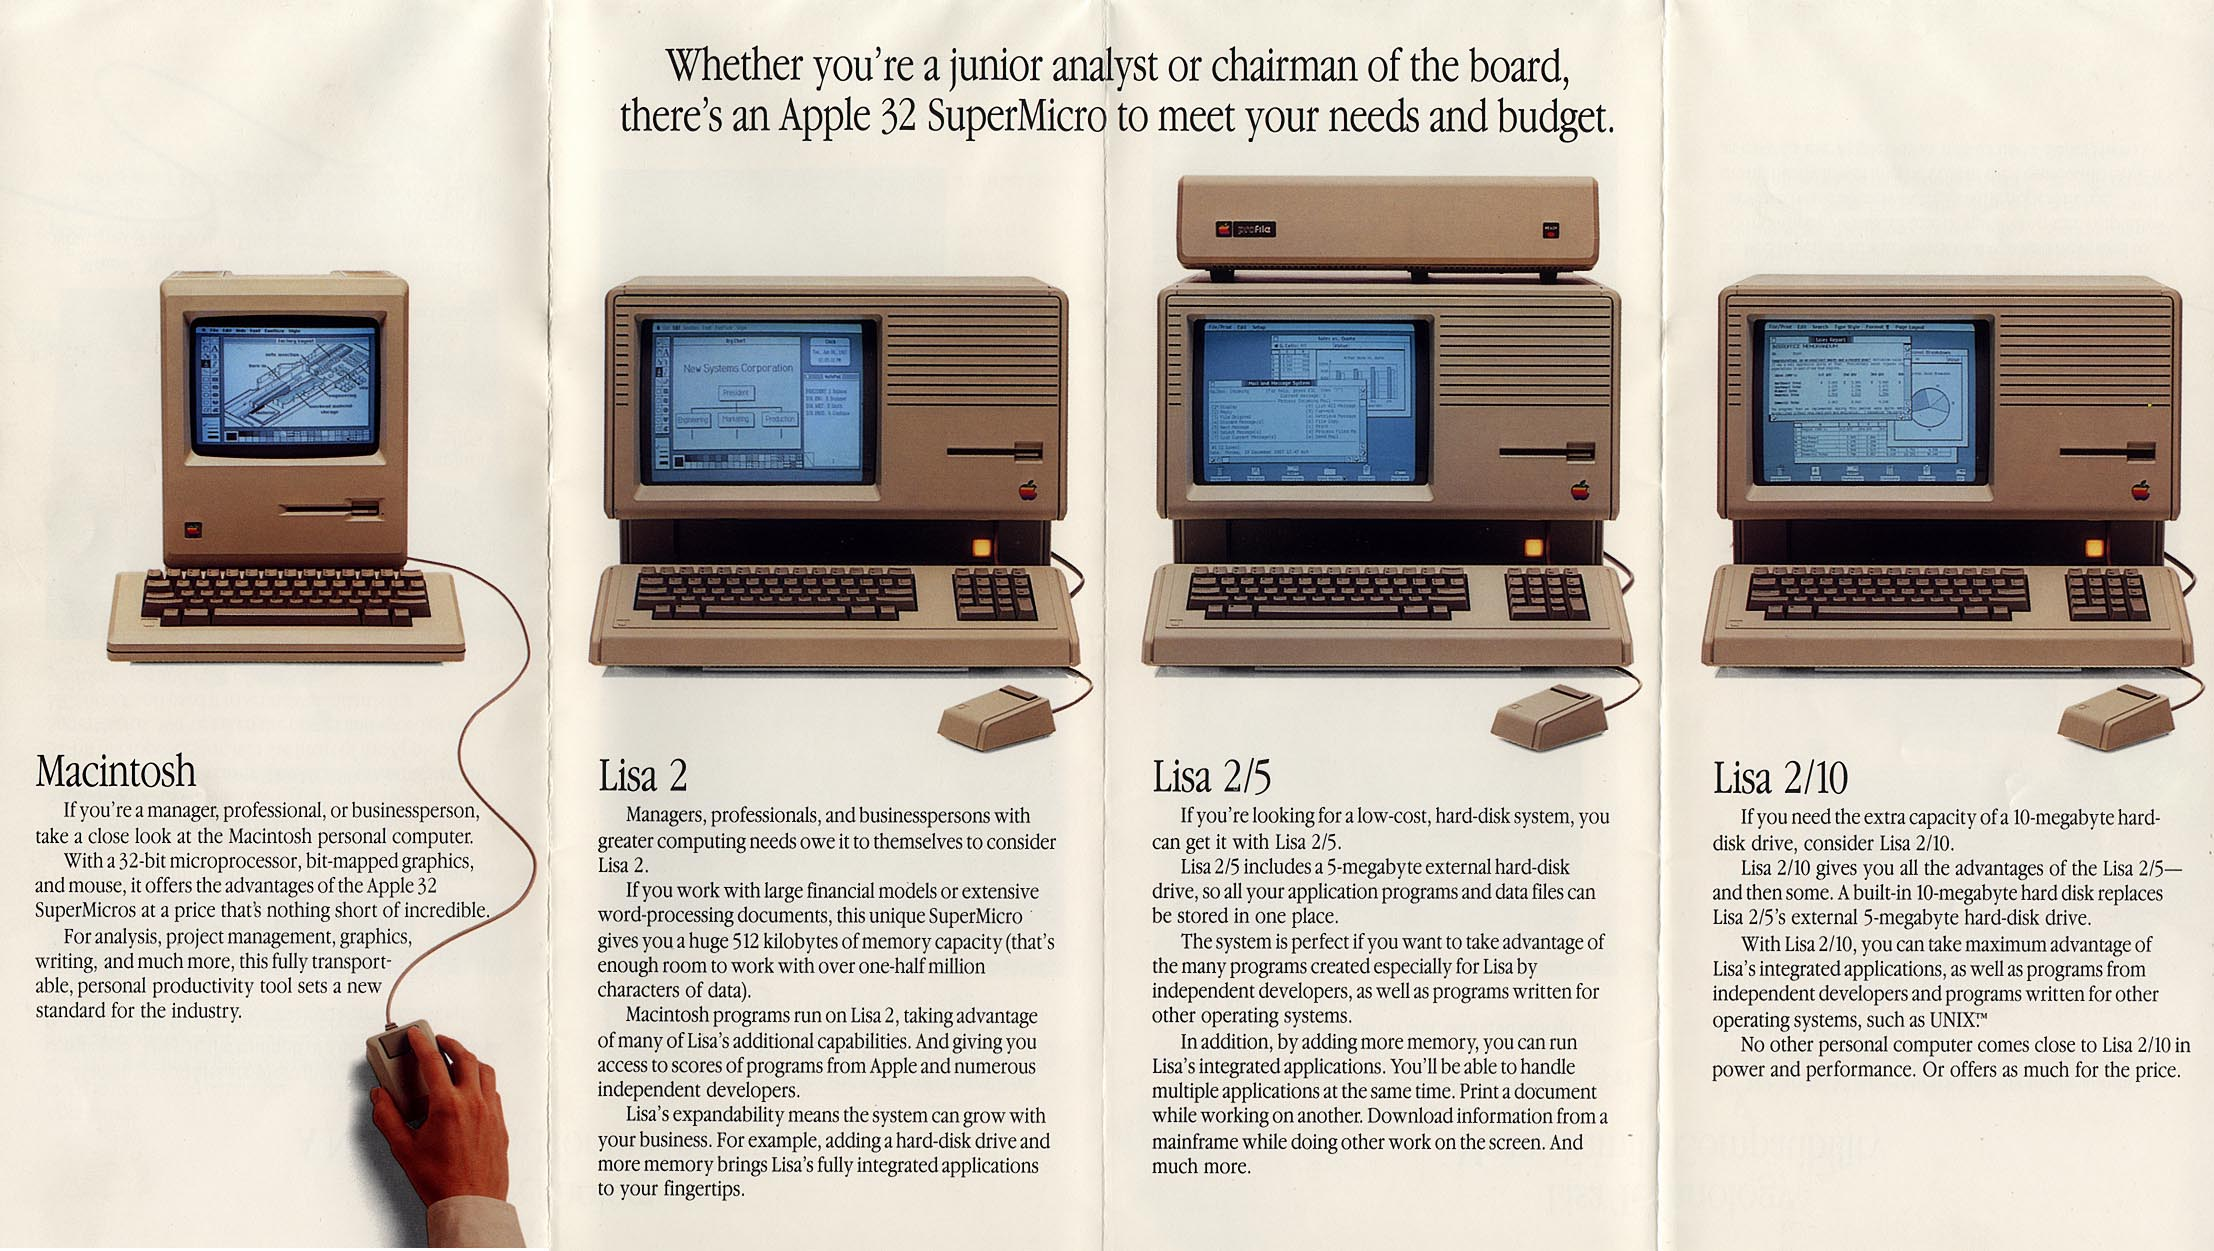 View an original apple lisa usa advertisement (416kb.)